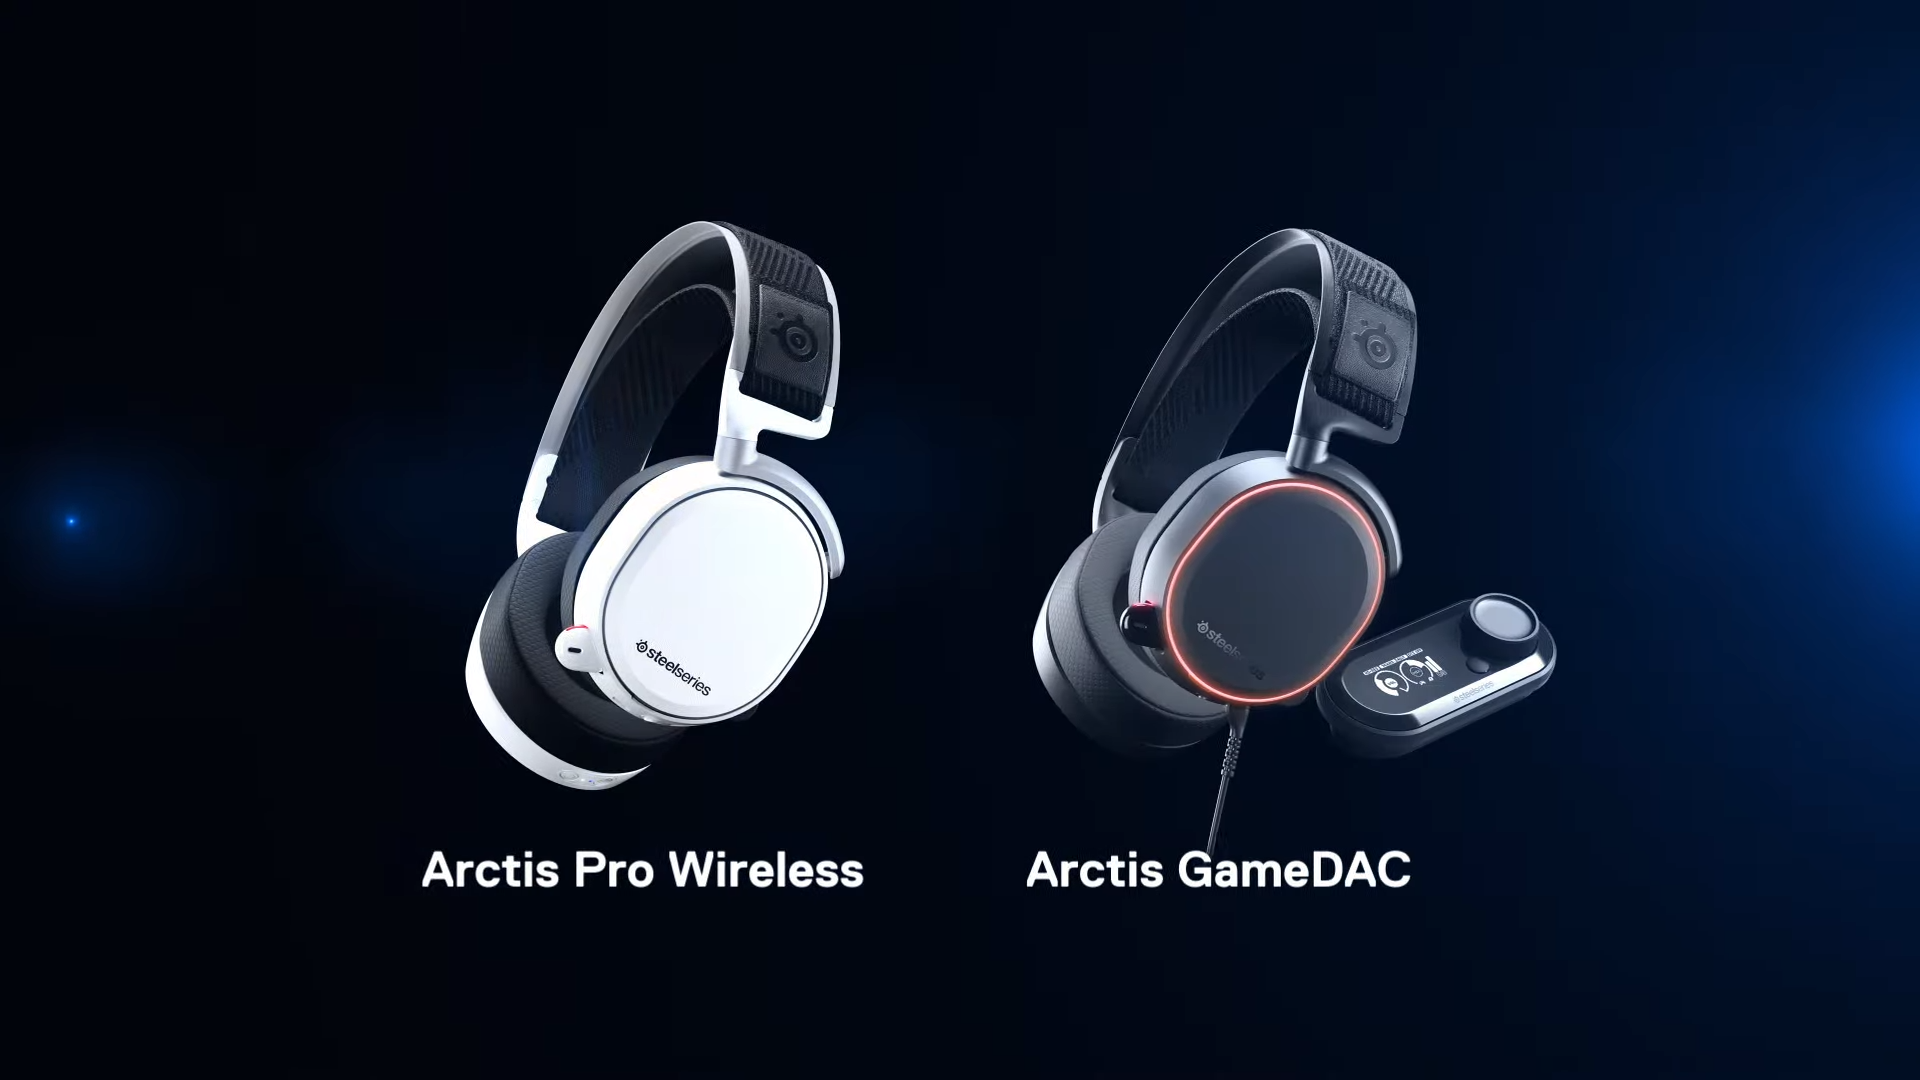 An Arctis Pro or GameDAC headset.